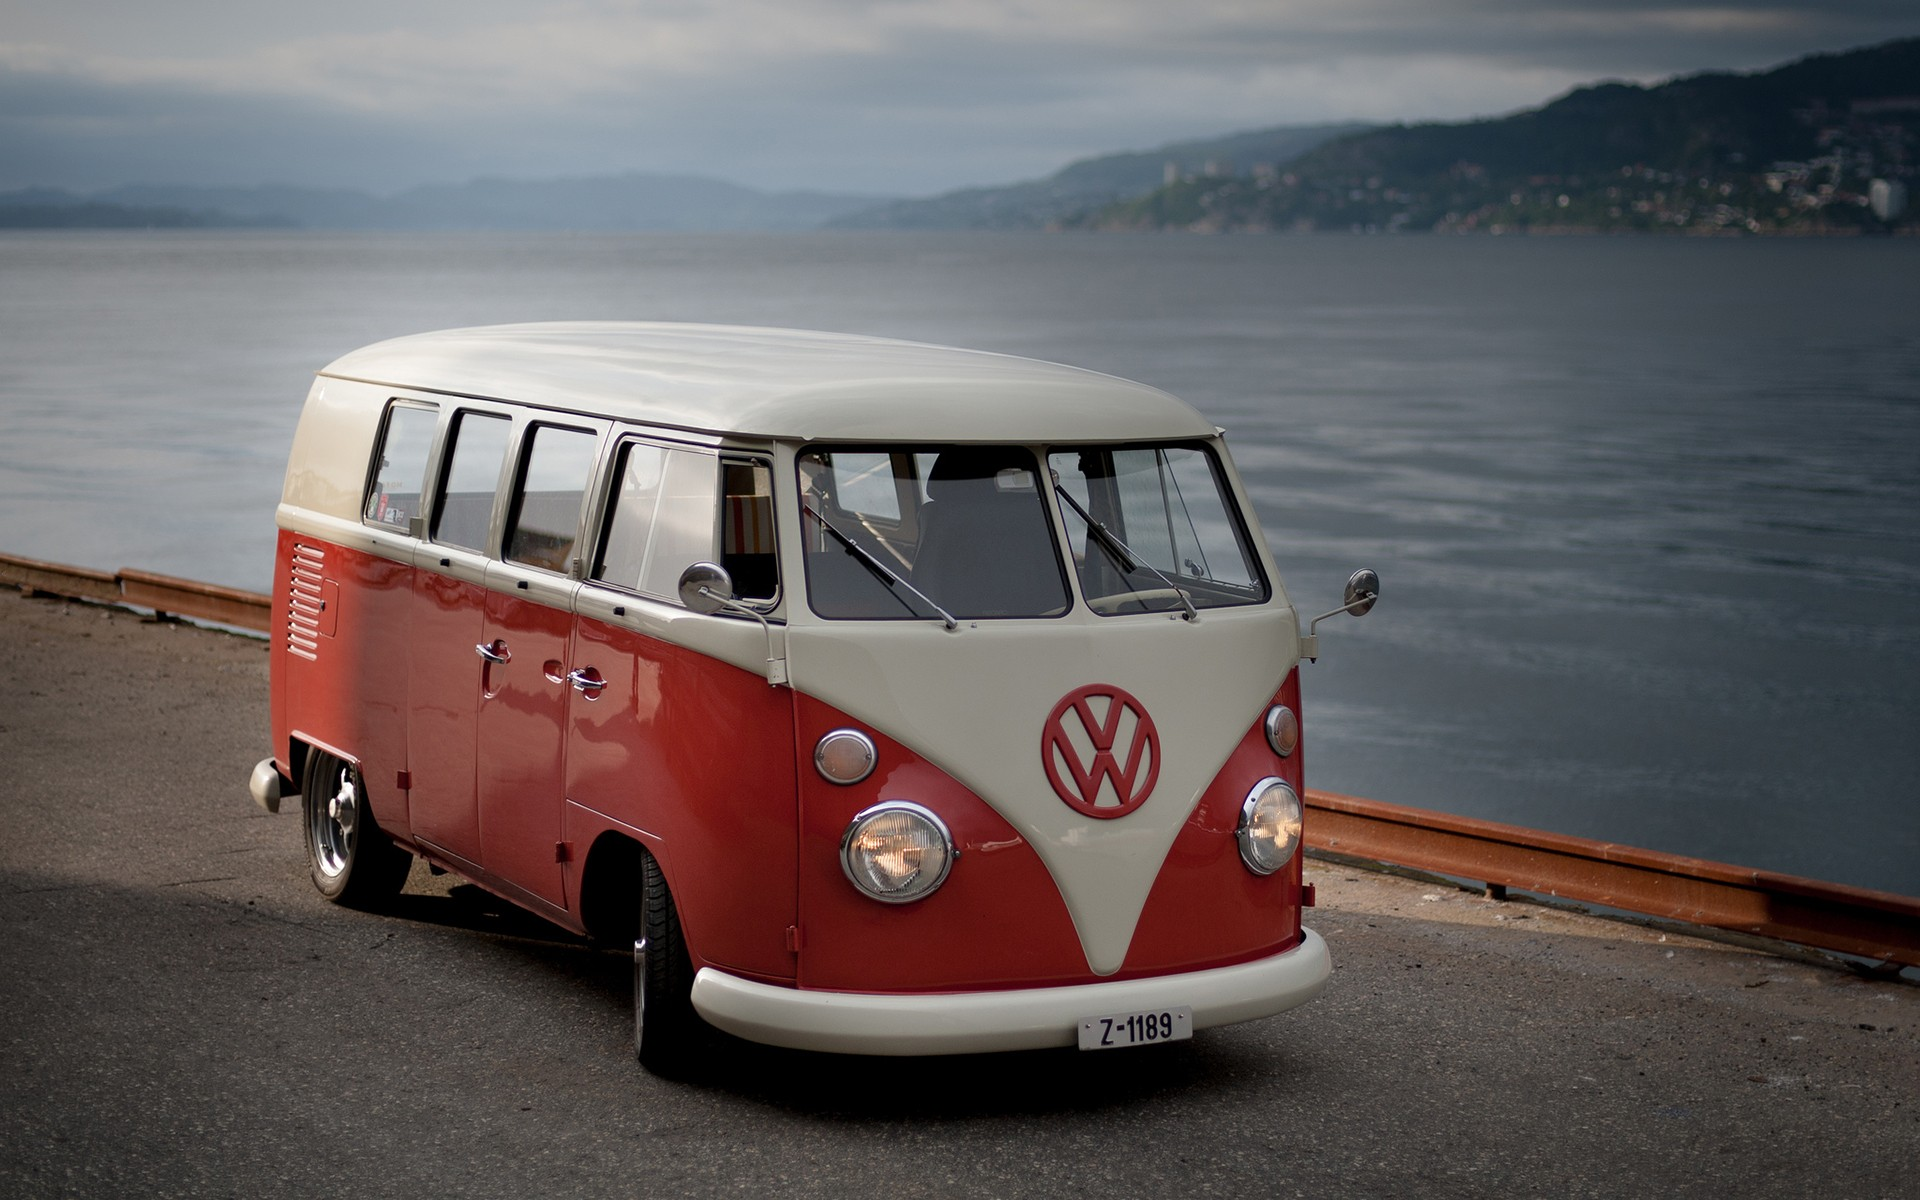 Volkswagen Wallpaper High Definition